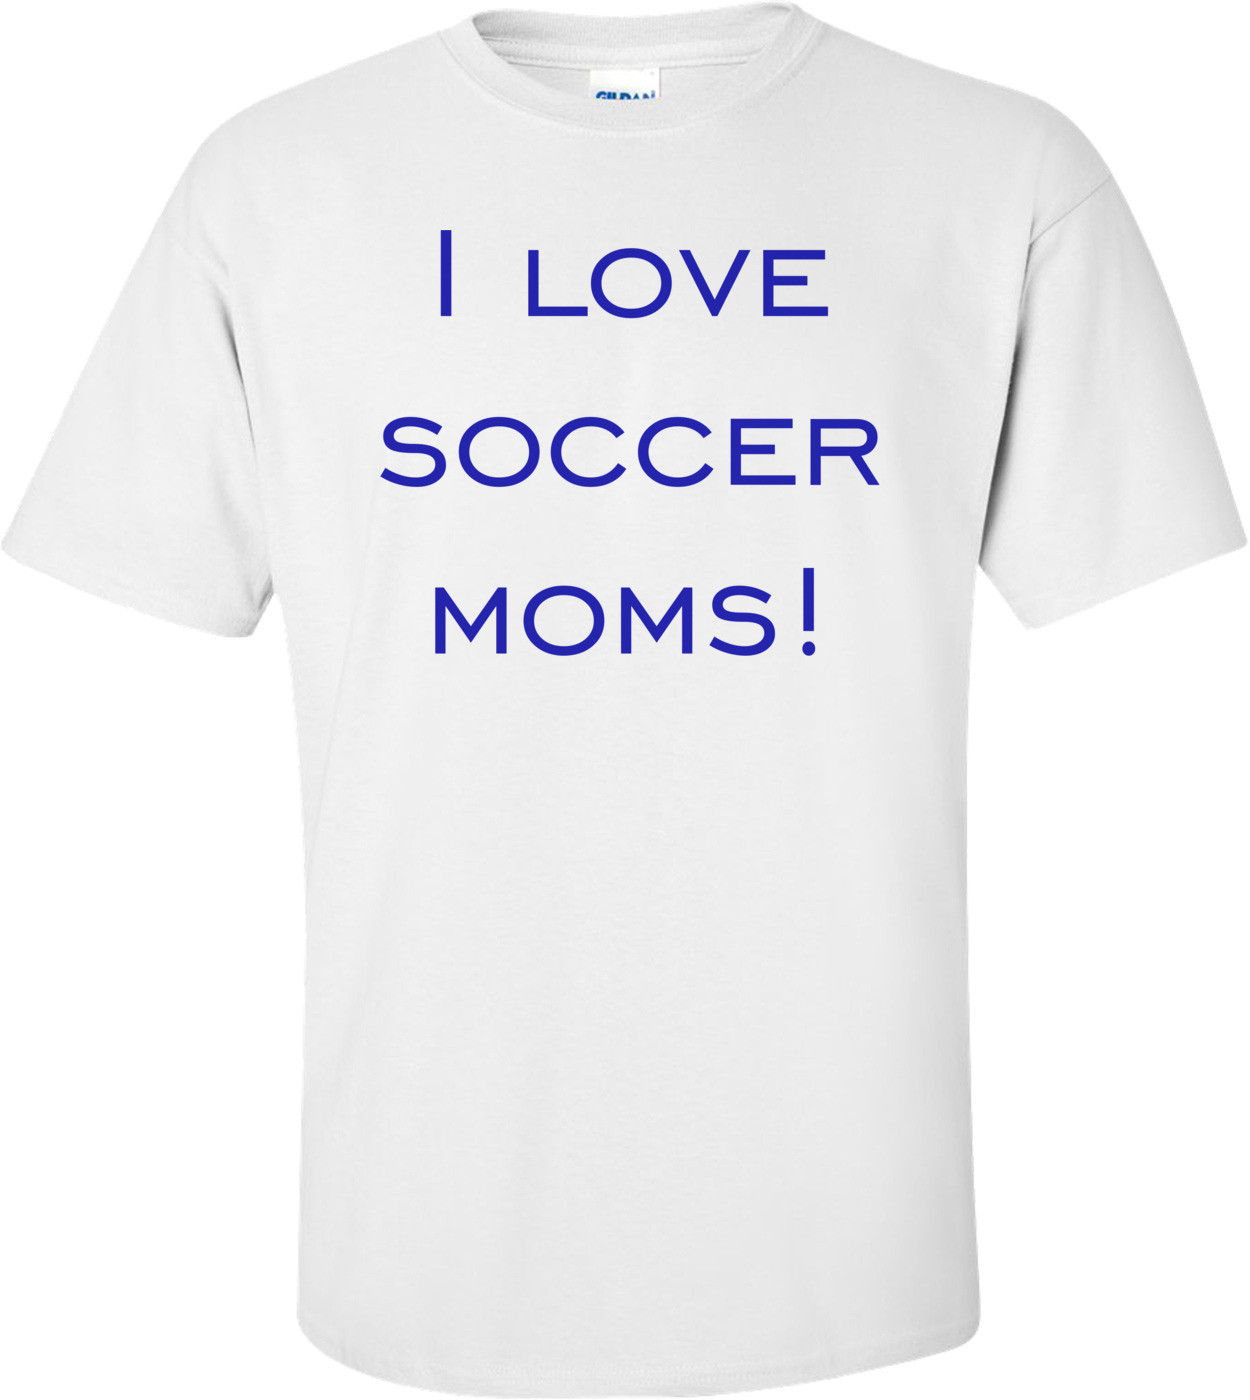 I love soccer moms! Shirt